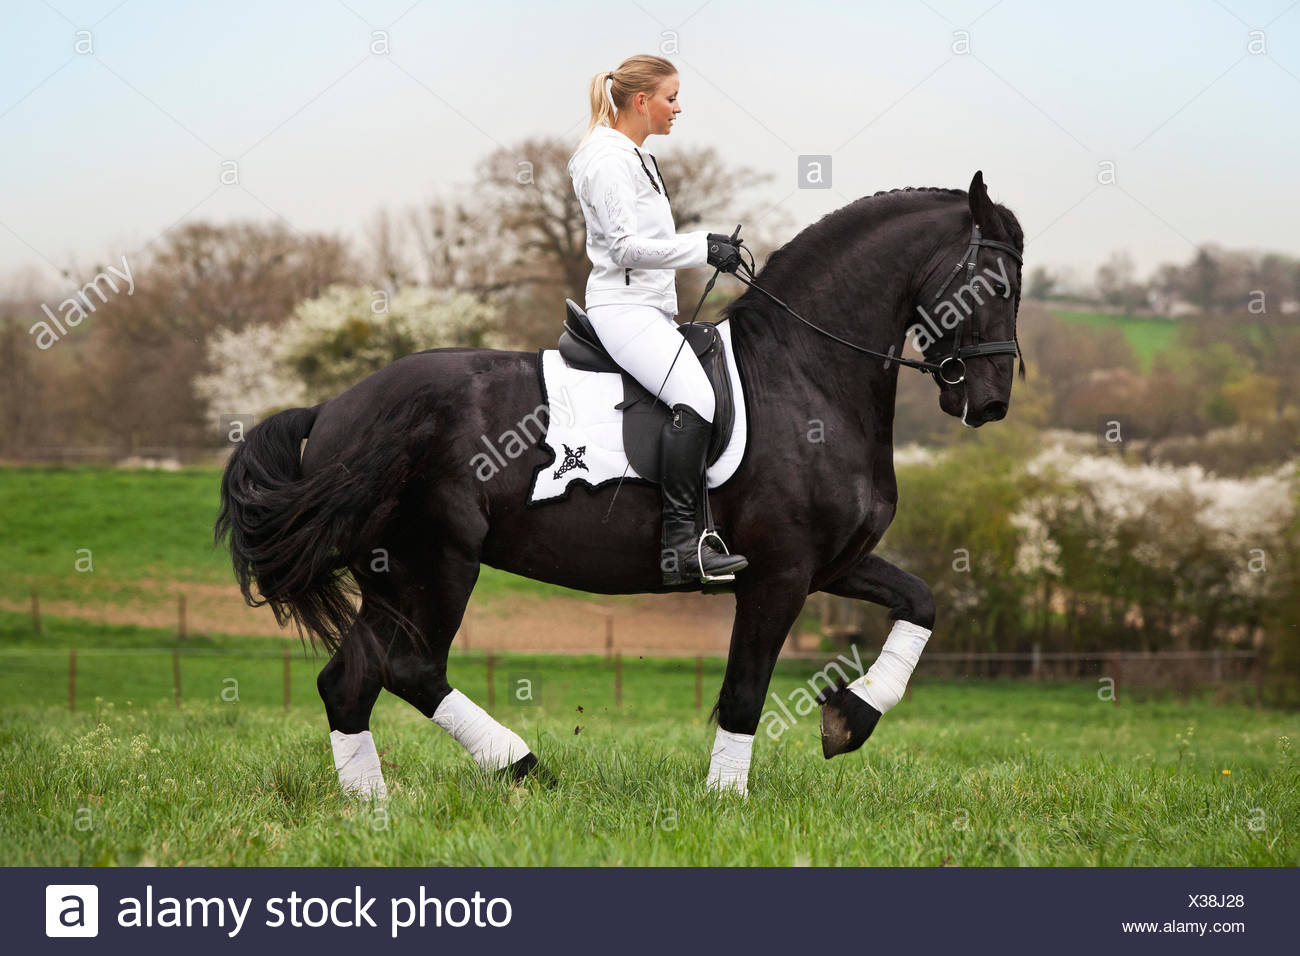 Friesian or Frisian horse, stallion with a female rider on horseback